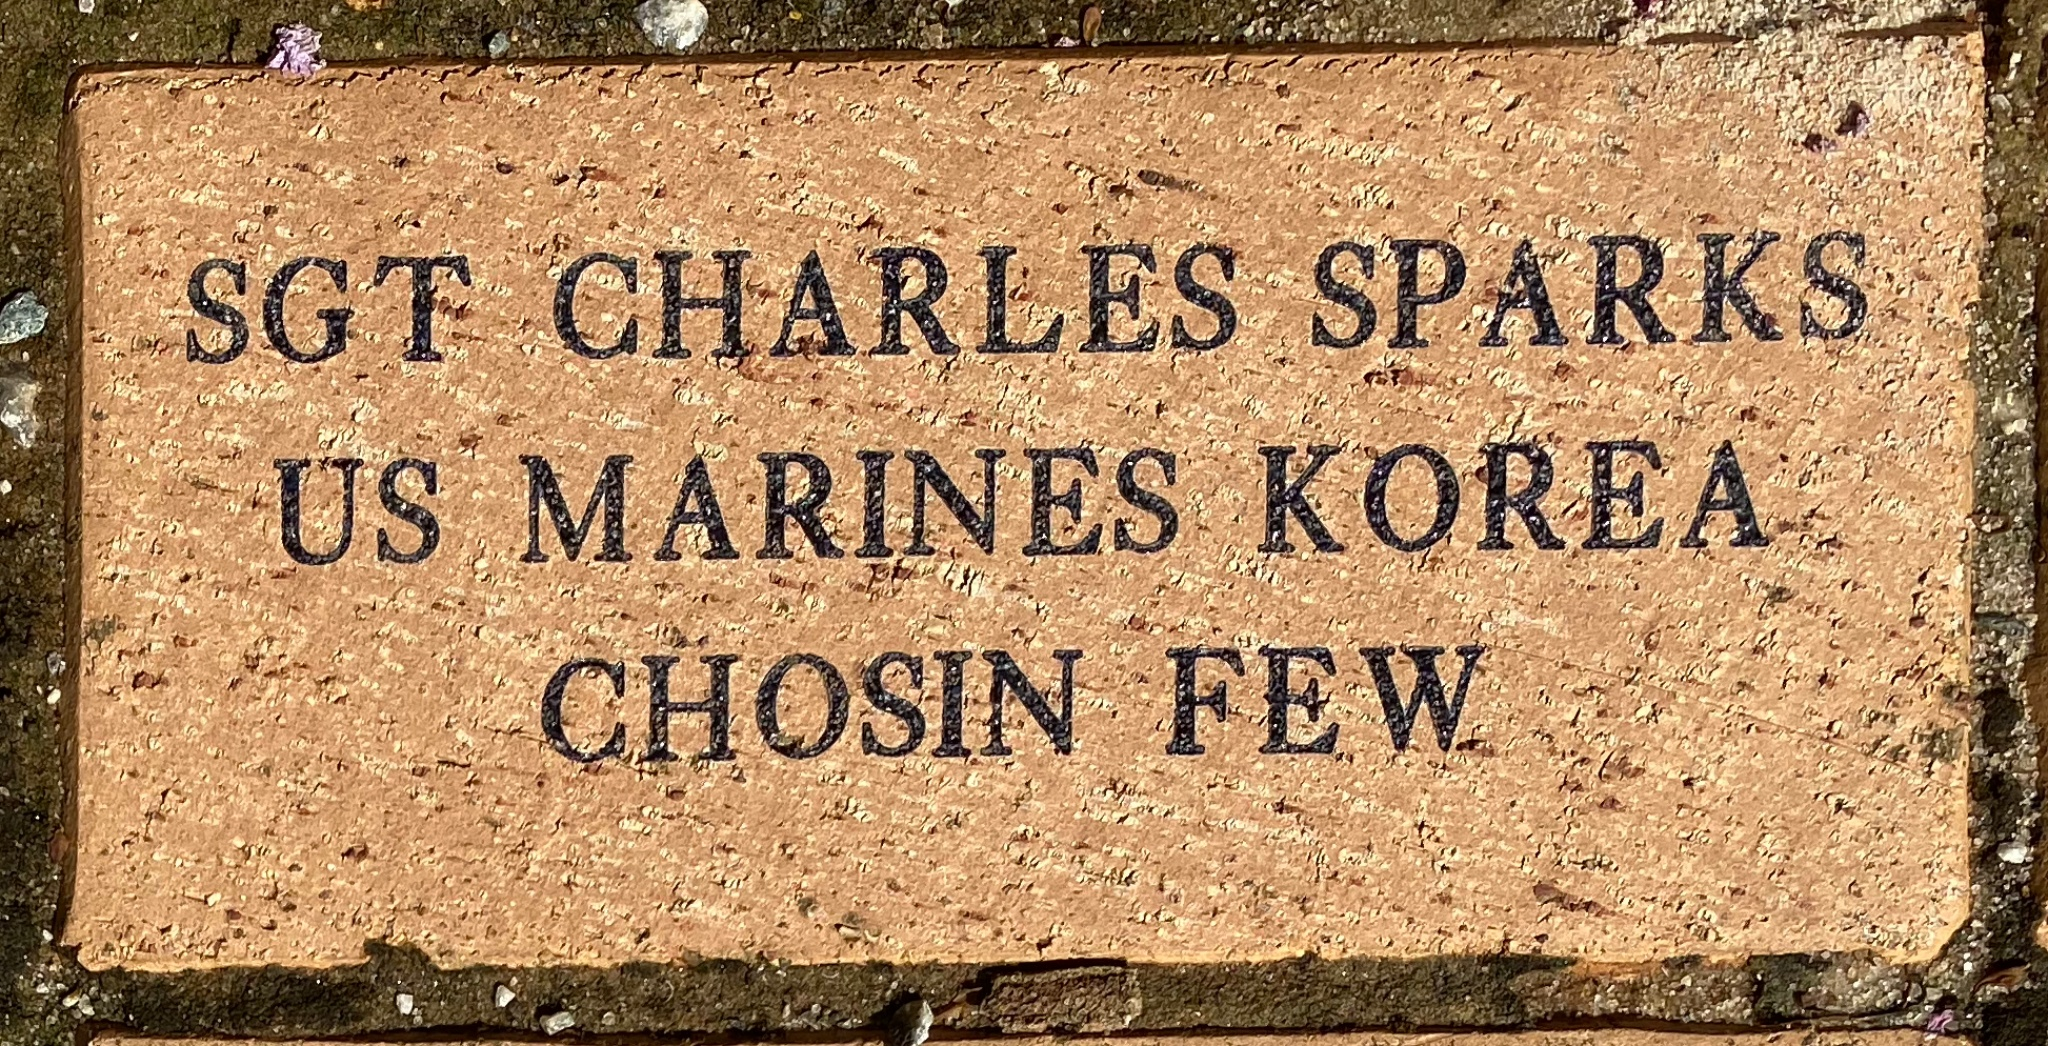 SGT CHARLES SPARKS US MARINES KOREA CHOSIN FEW